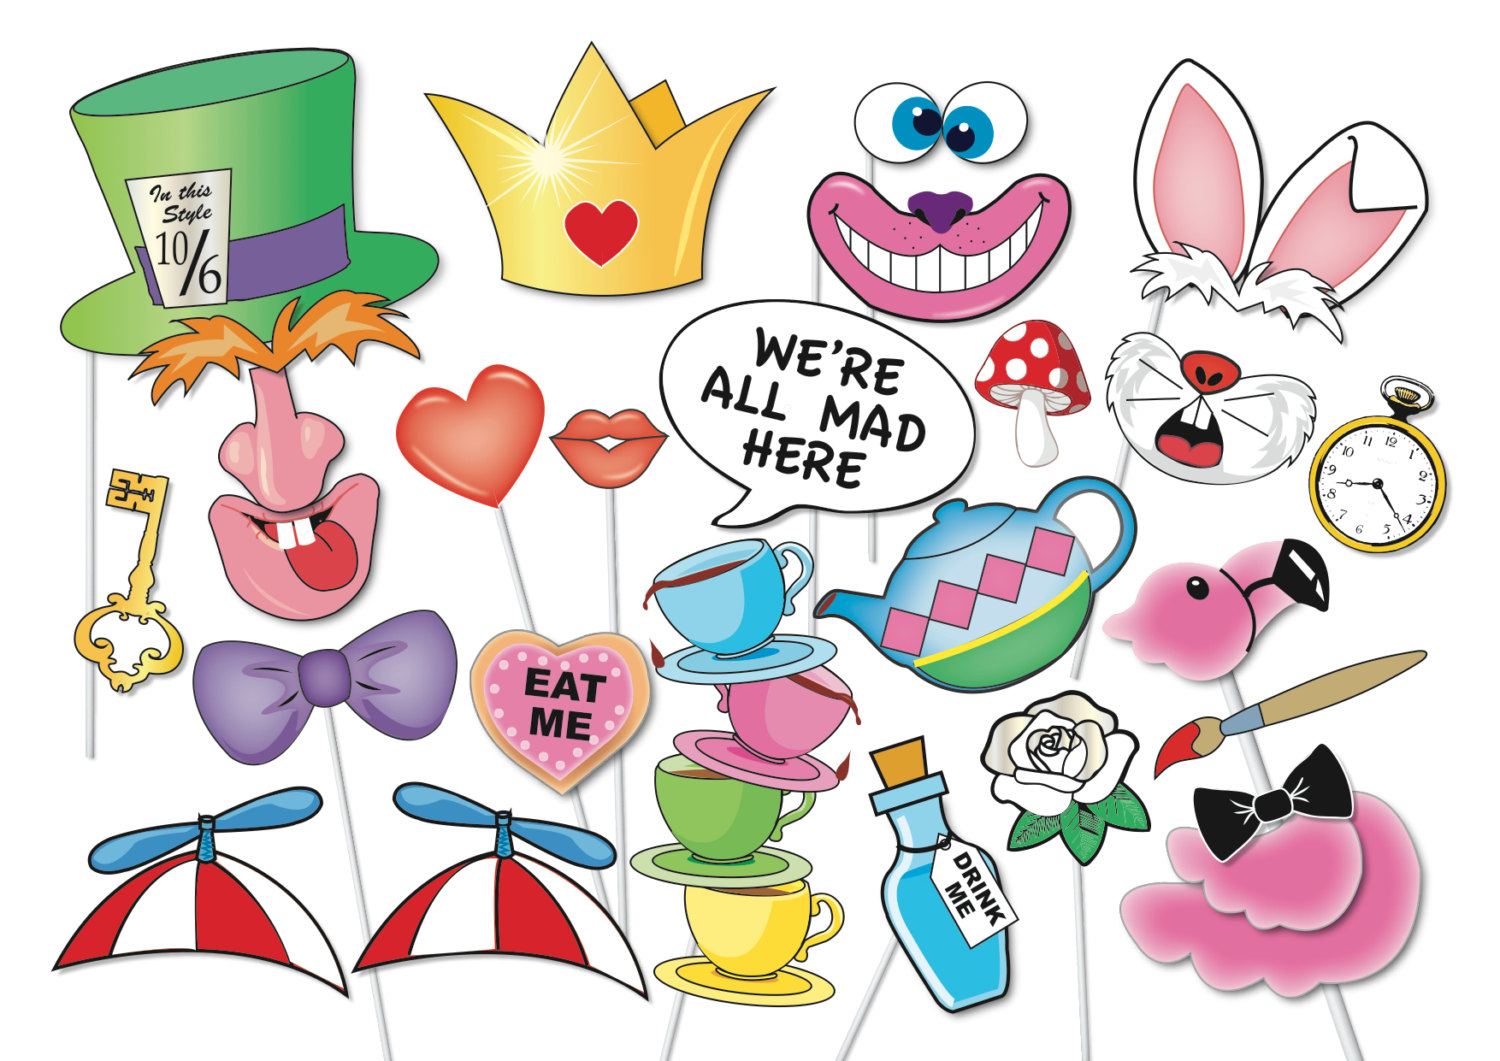 Hatters tea party photo. Cake clipart mad hatter